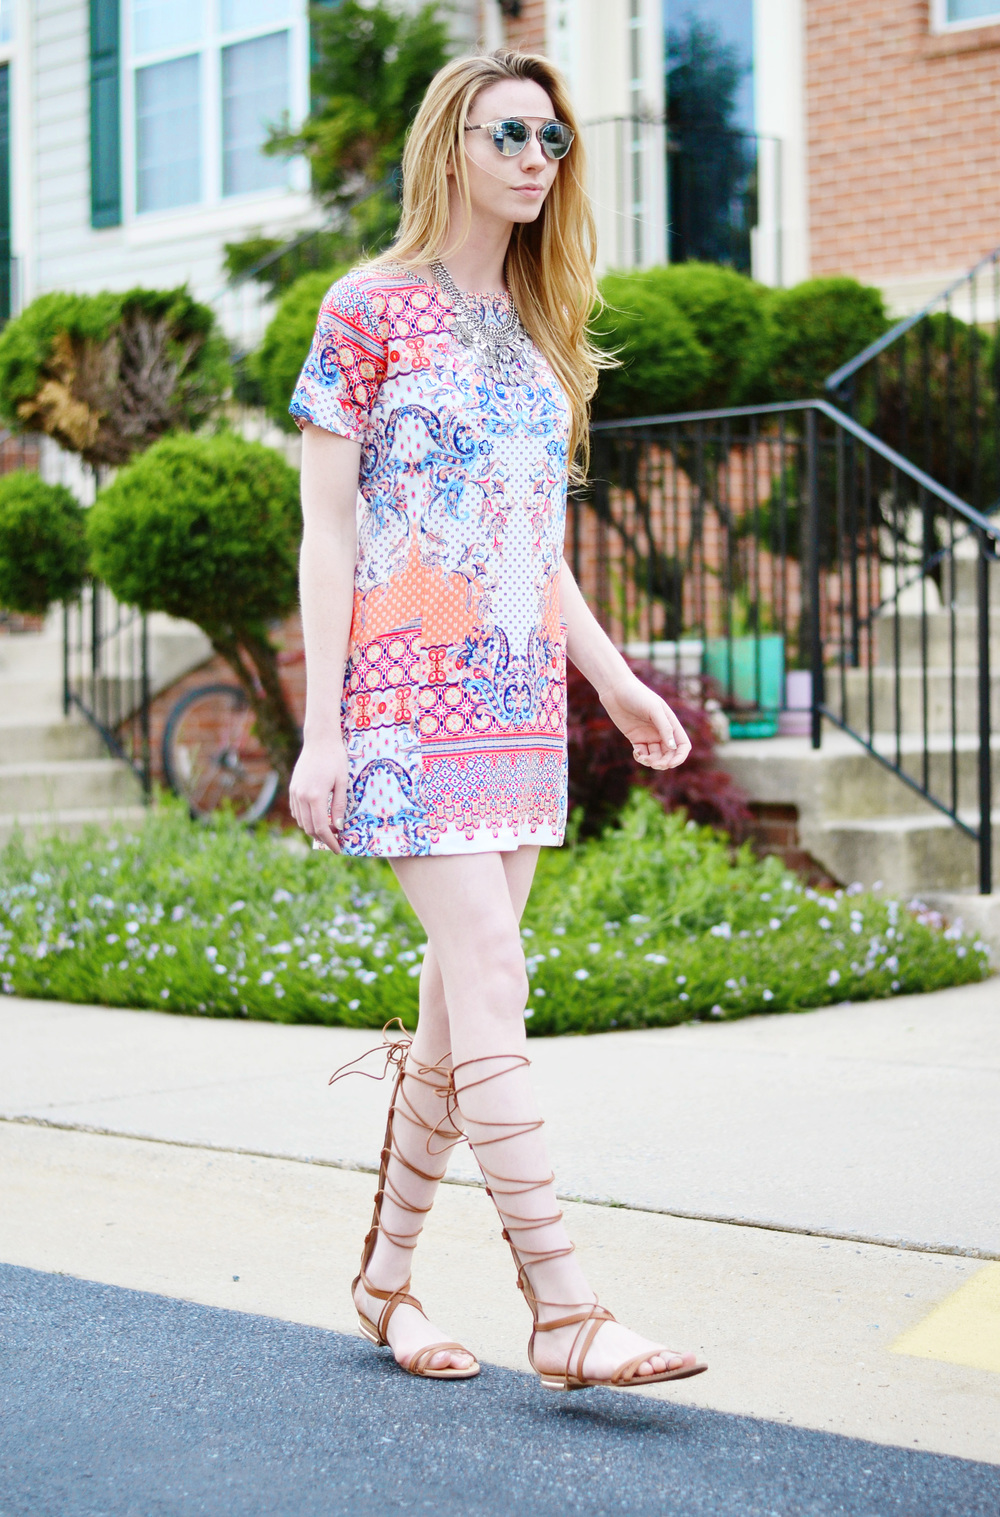 Colorful Summer Shift Dress (via Chic Now)